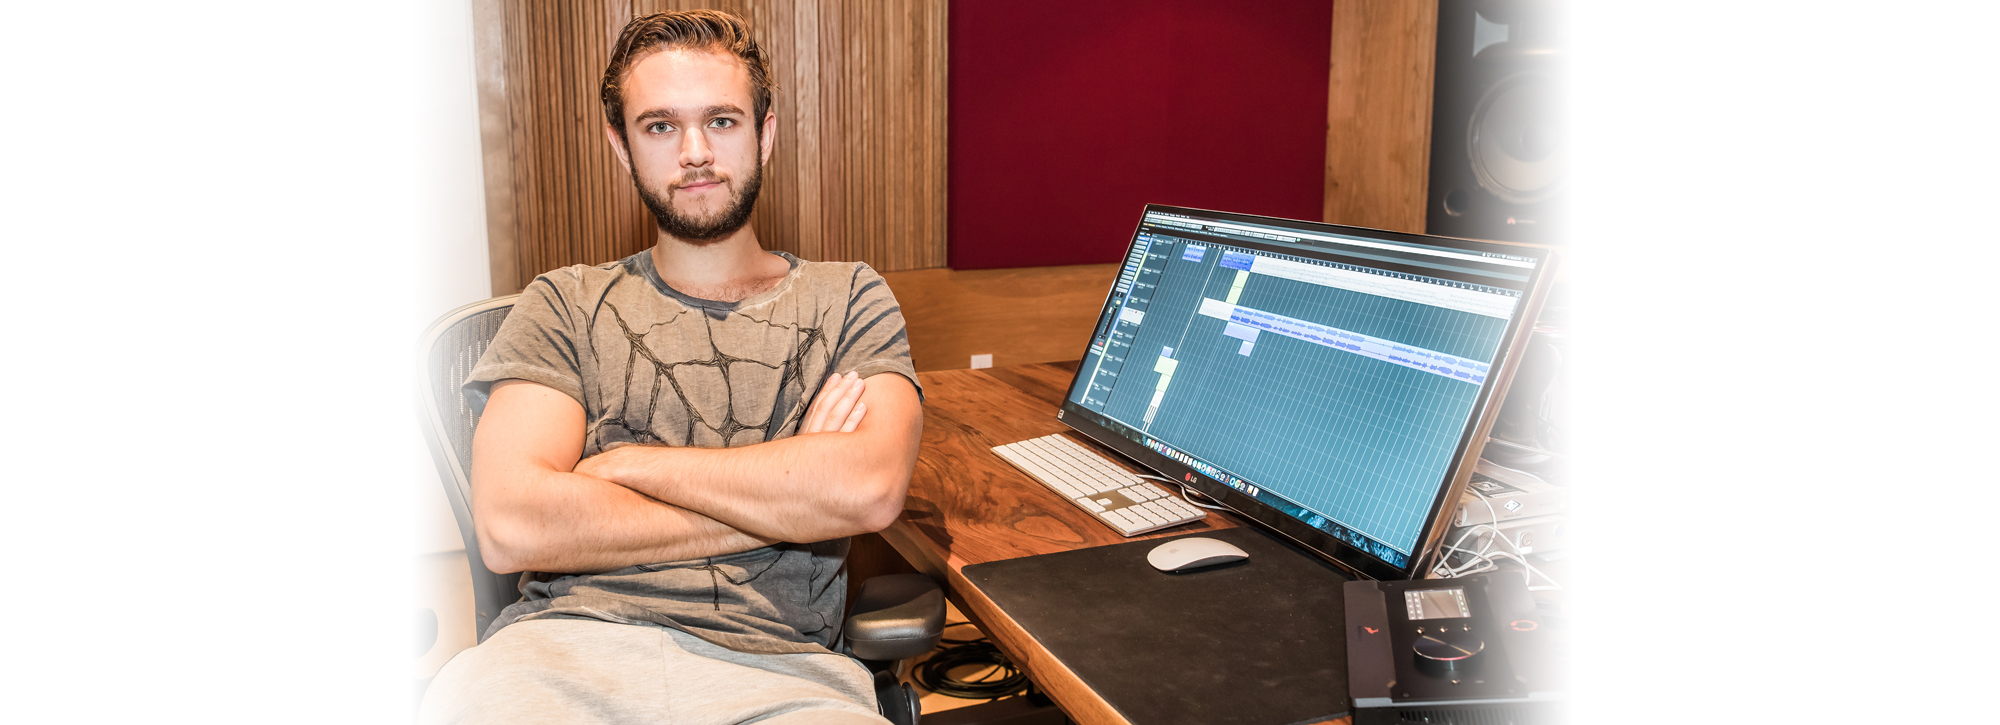 Award-Winning Producer, DJ, and Musician Zedd Keeps the Hits Coming with Antelope Audio